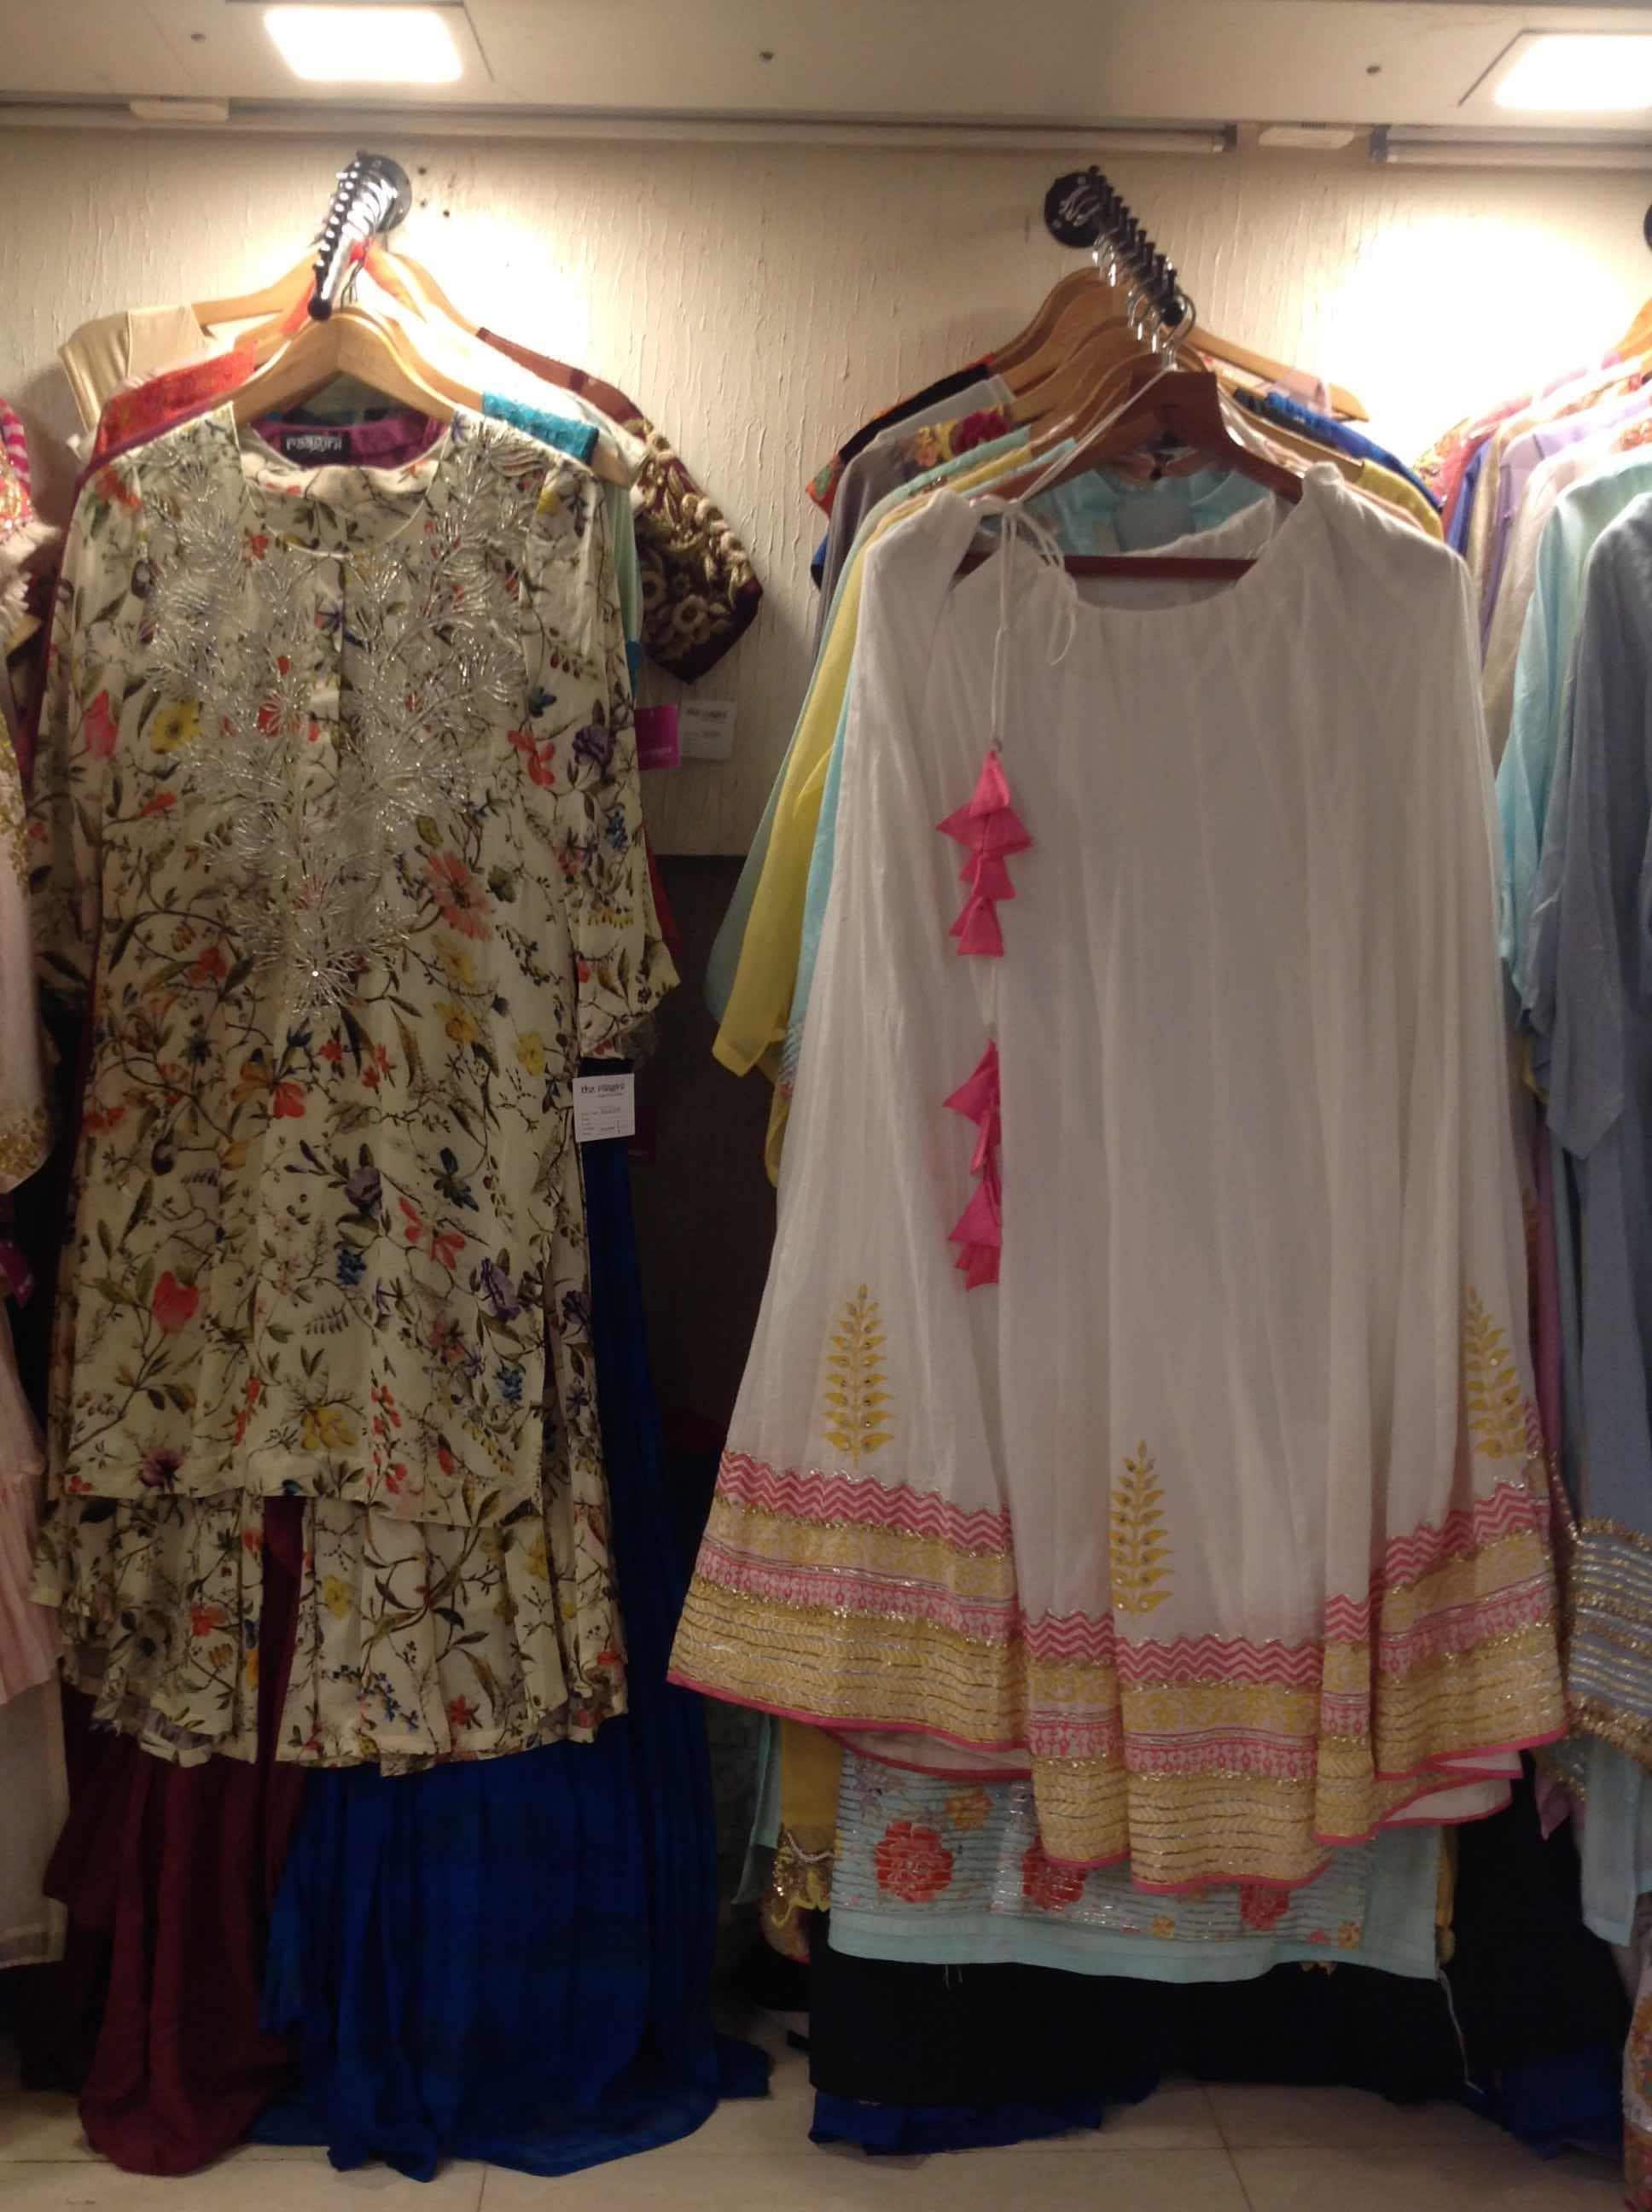 befd2349354d9 Fashion Designers in Andheri West - Clothes for Men, Women, Kids Mumbai -  Justdial